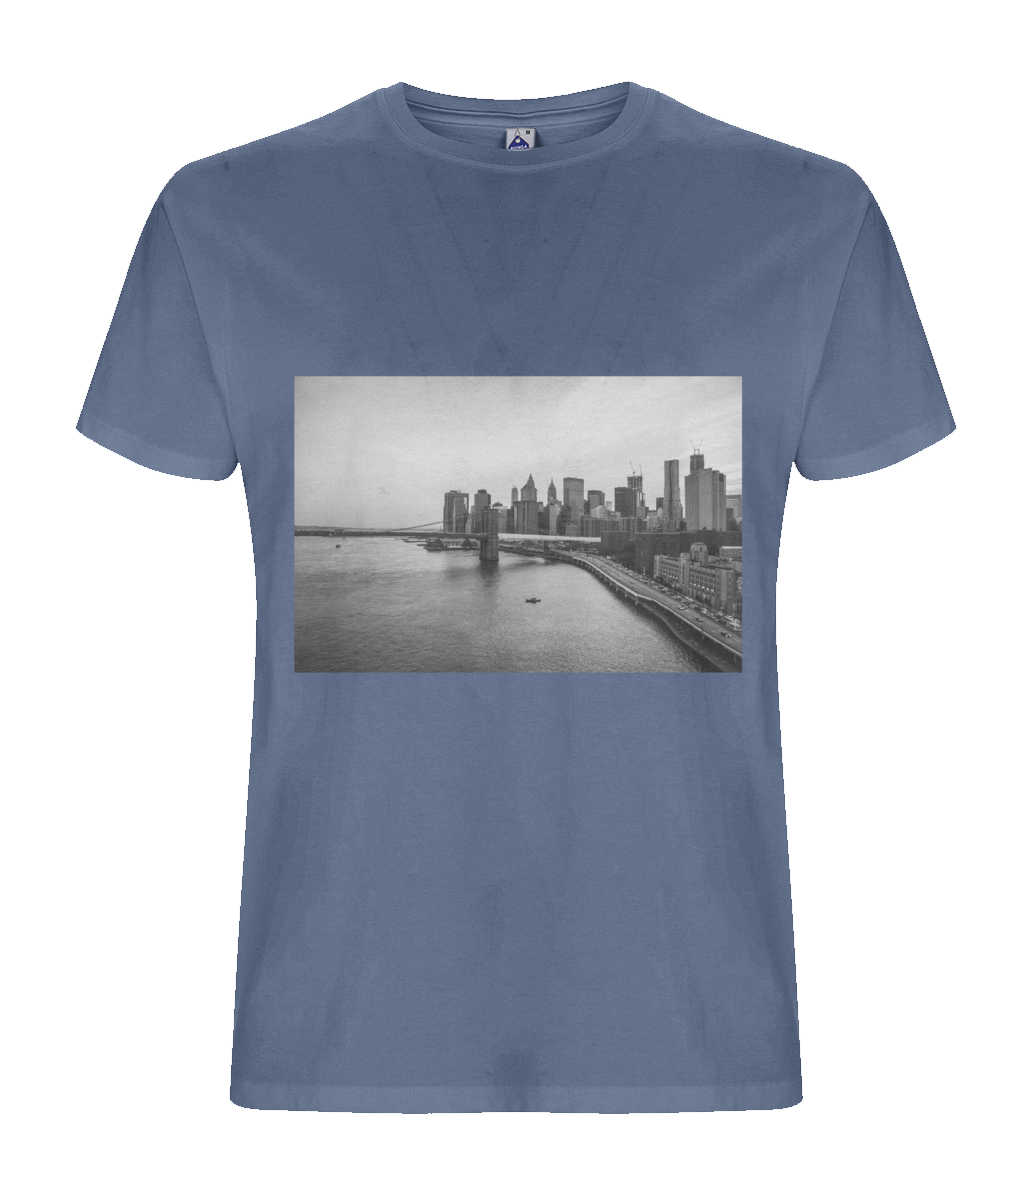 Men's T-shirt NYC - eco-wear-ltd